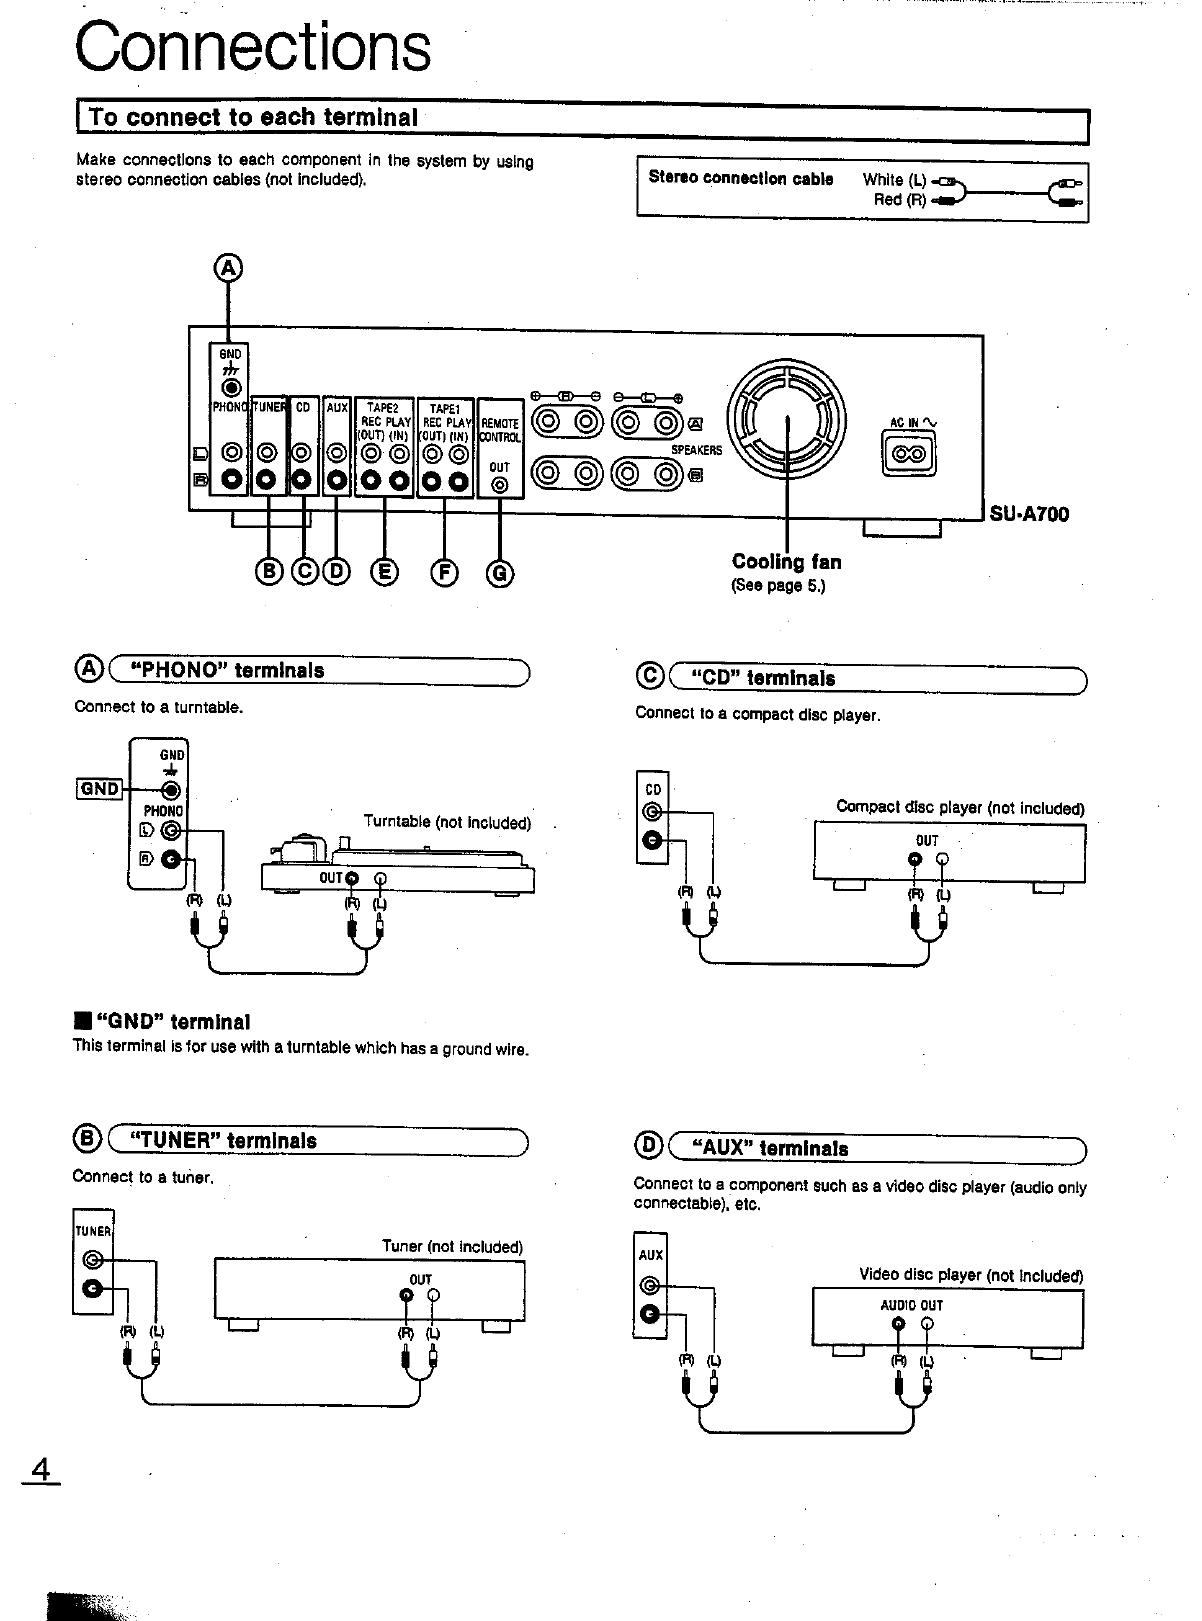 cb35890f b872 4e95 8dde 0d926f72eb37 bg4 lanzar snv695n wiring diagram conventional fire alarm wiring lanzar snv695n wiring diagram at crackthecode.co